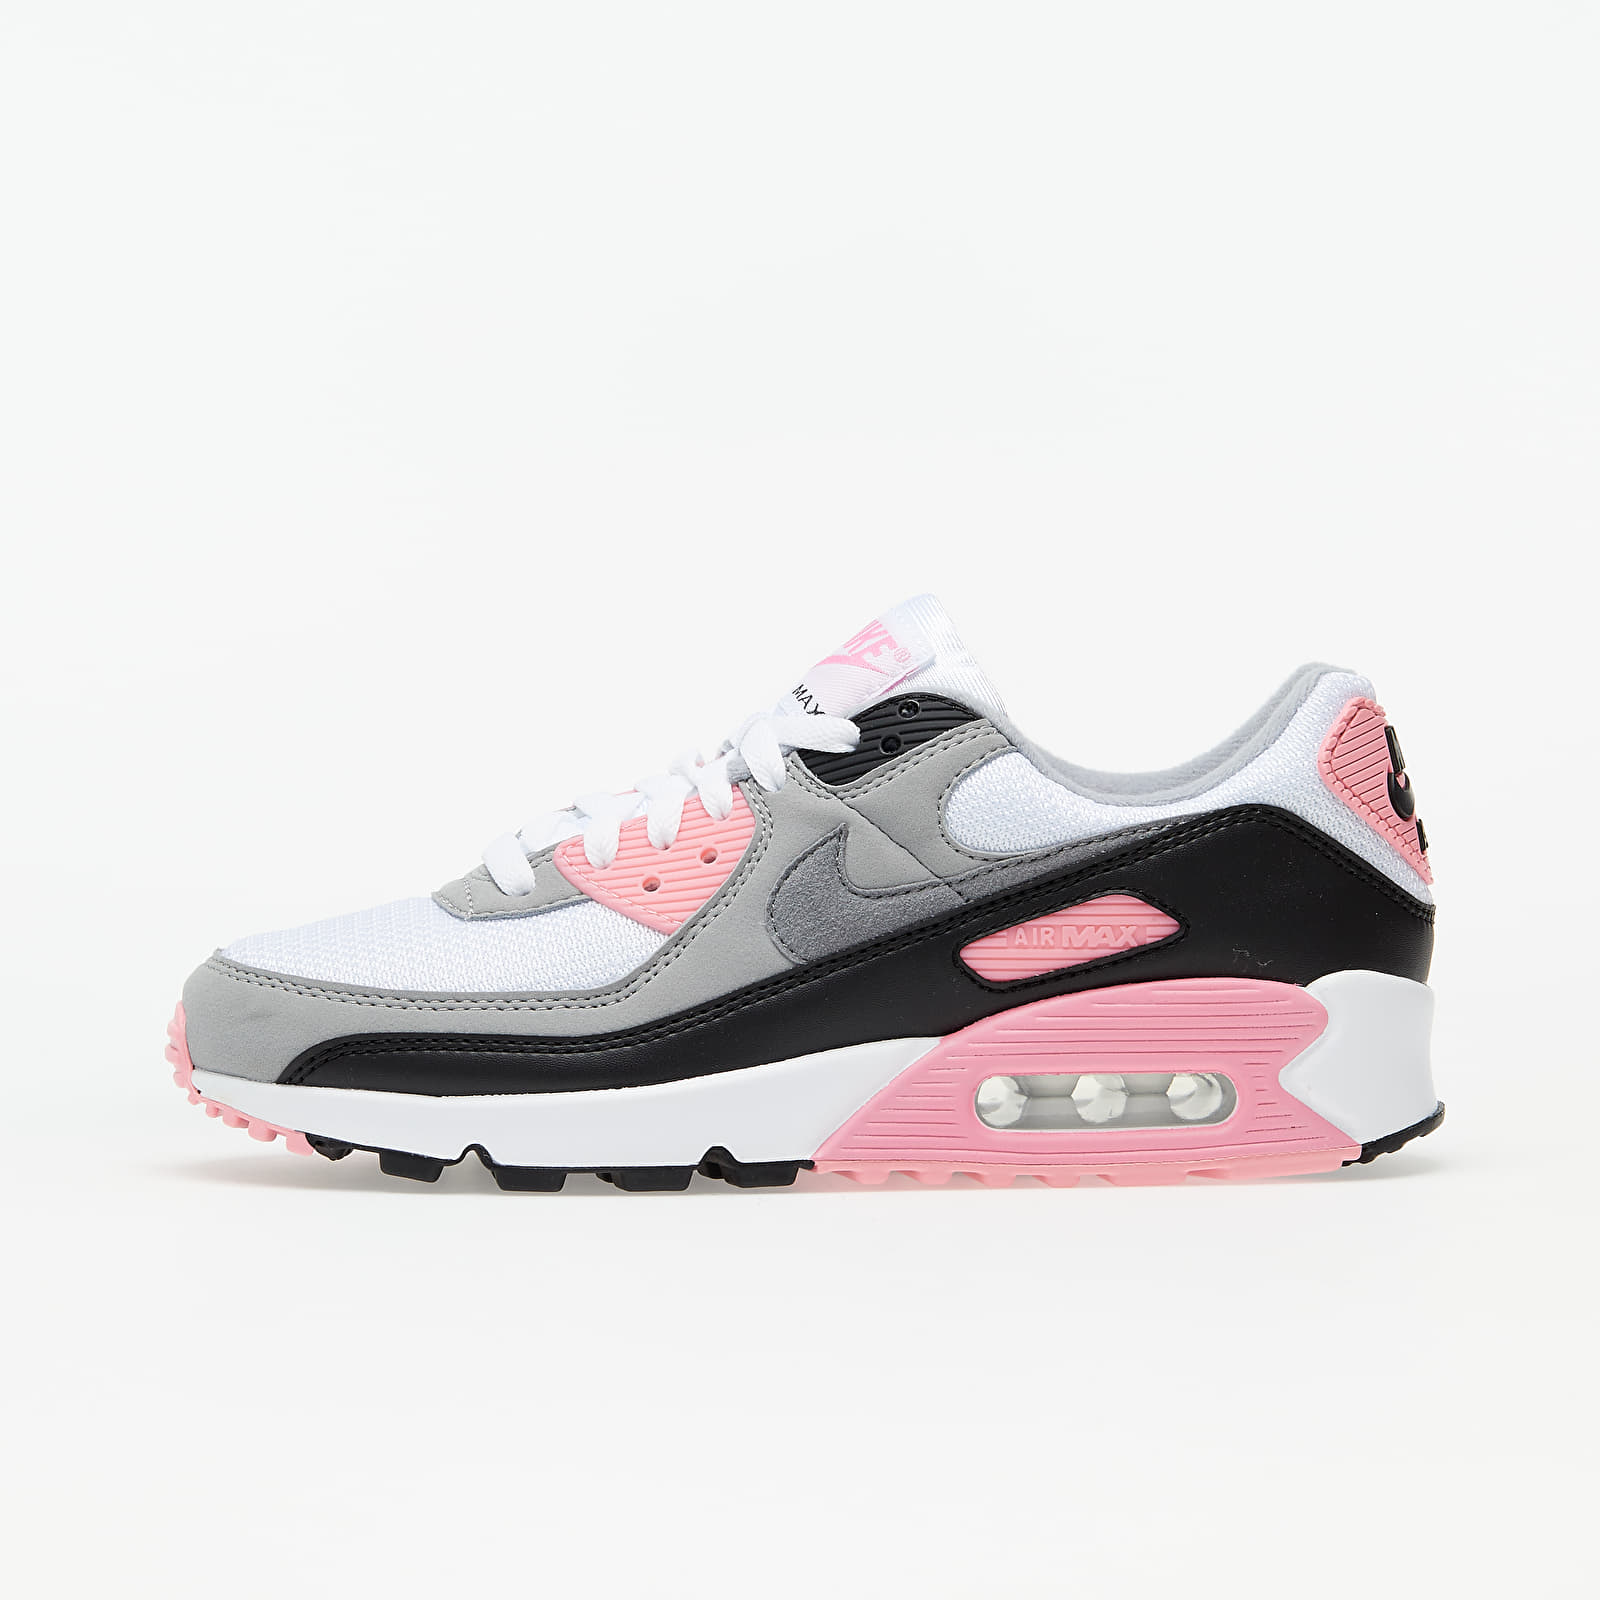 Women's shoes Nike W Air Max 90 White/ Particle Grey-Rose-Black